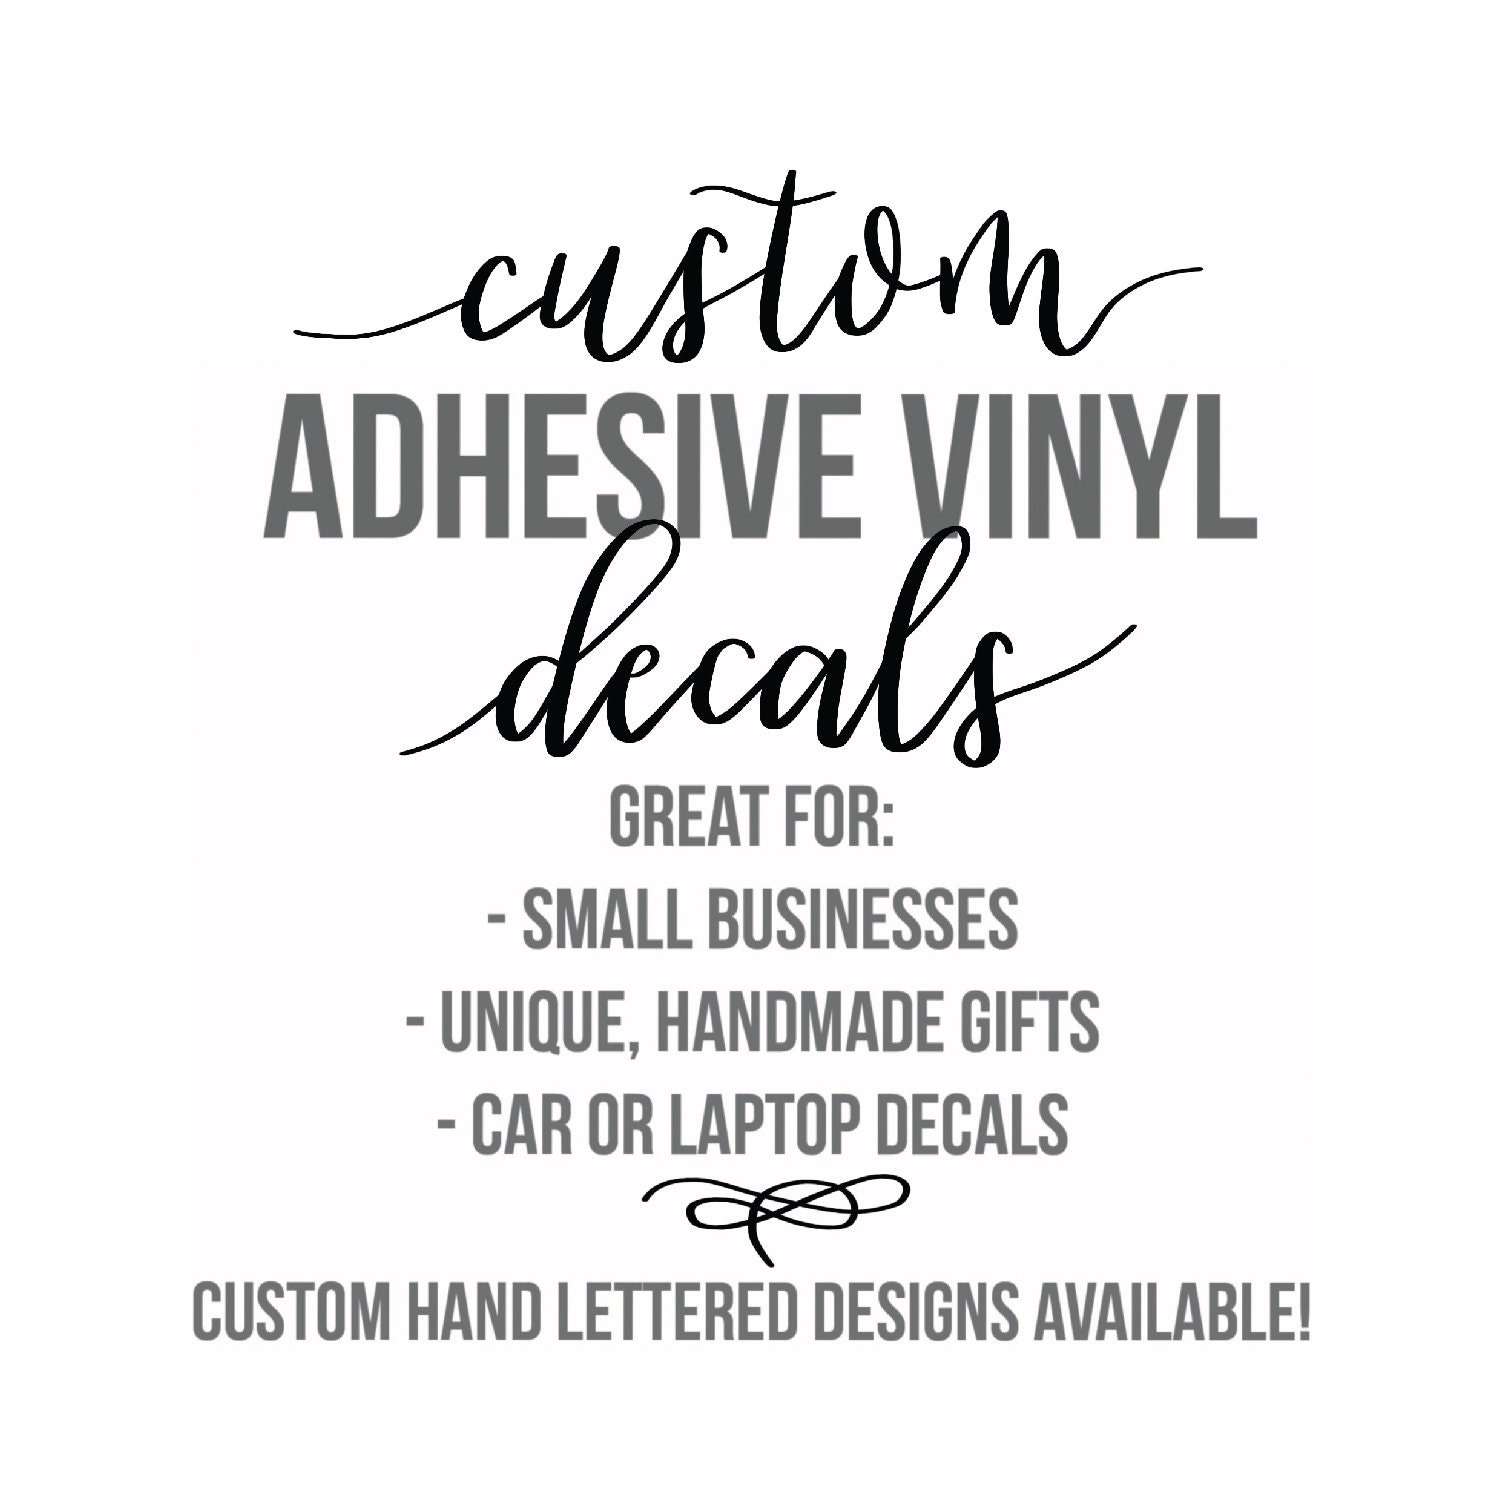 Custom vinyl stickers company logo sticker small business logo sticker adhesive vinyl decals car decal bulk order decals